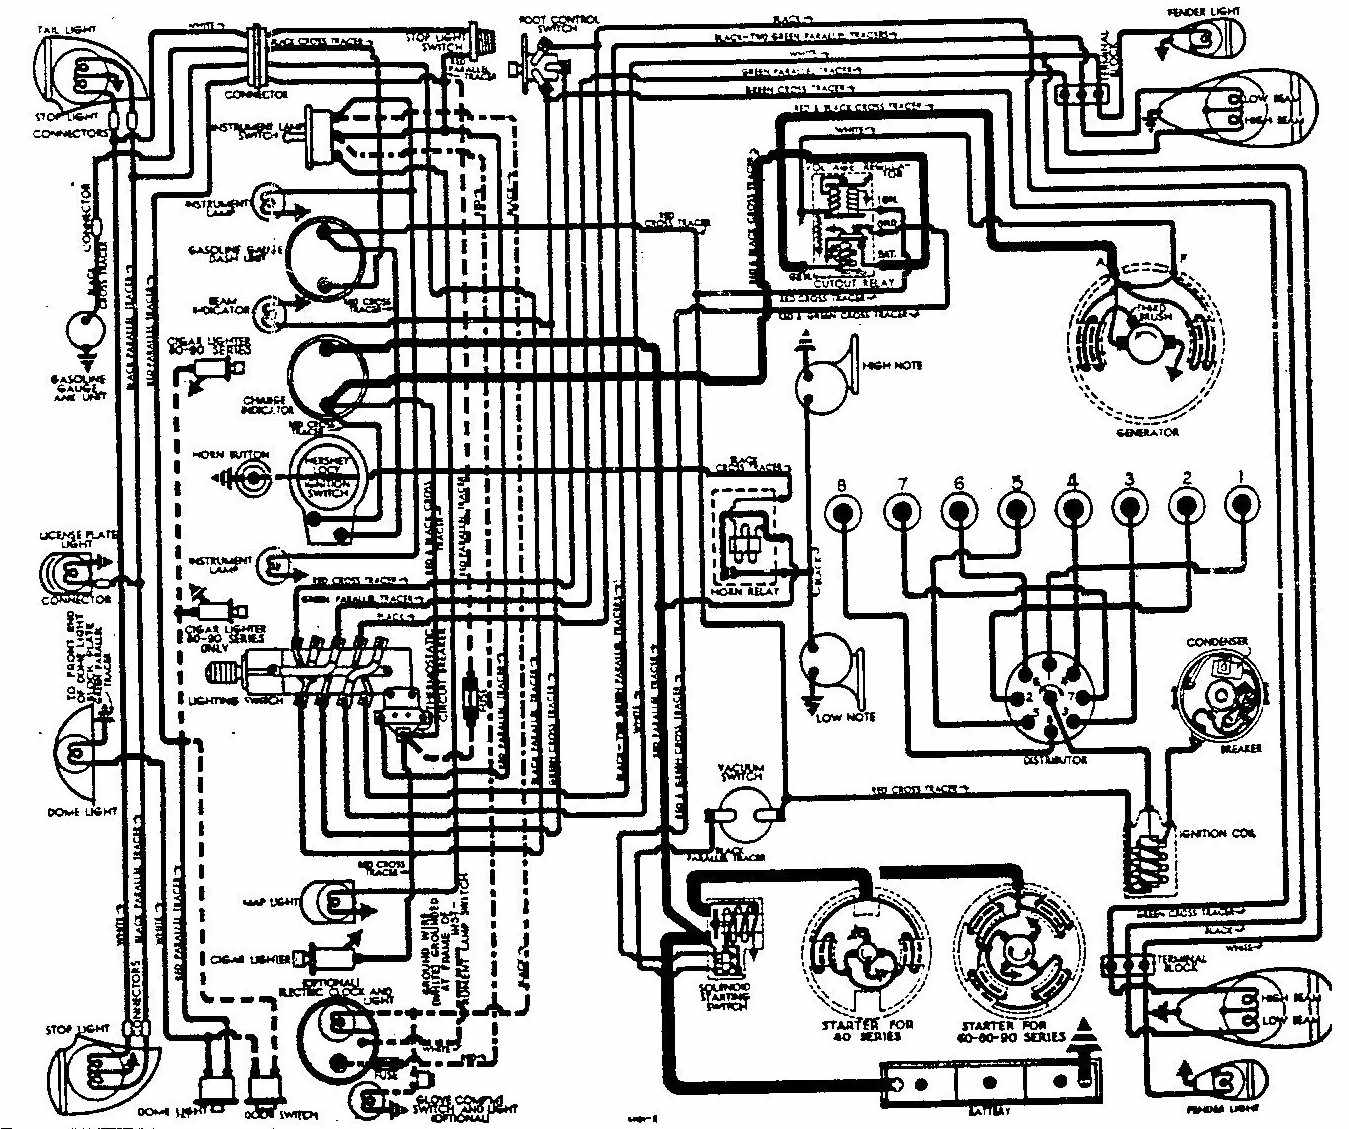 Buick+Roadmaster+1938+Electrical+Wiring+Diagram ford 7710 tractor wiring diagram ford discover your wiring Ford Tractor Wiring Harness Diagram at creativeand.co